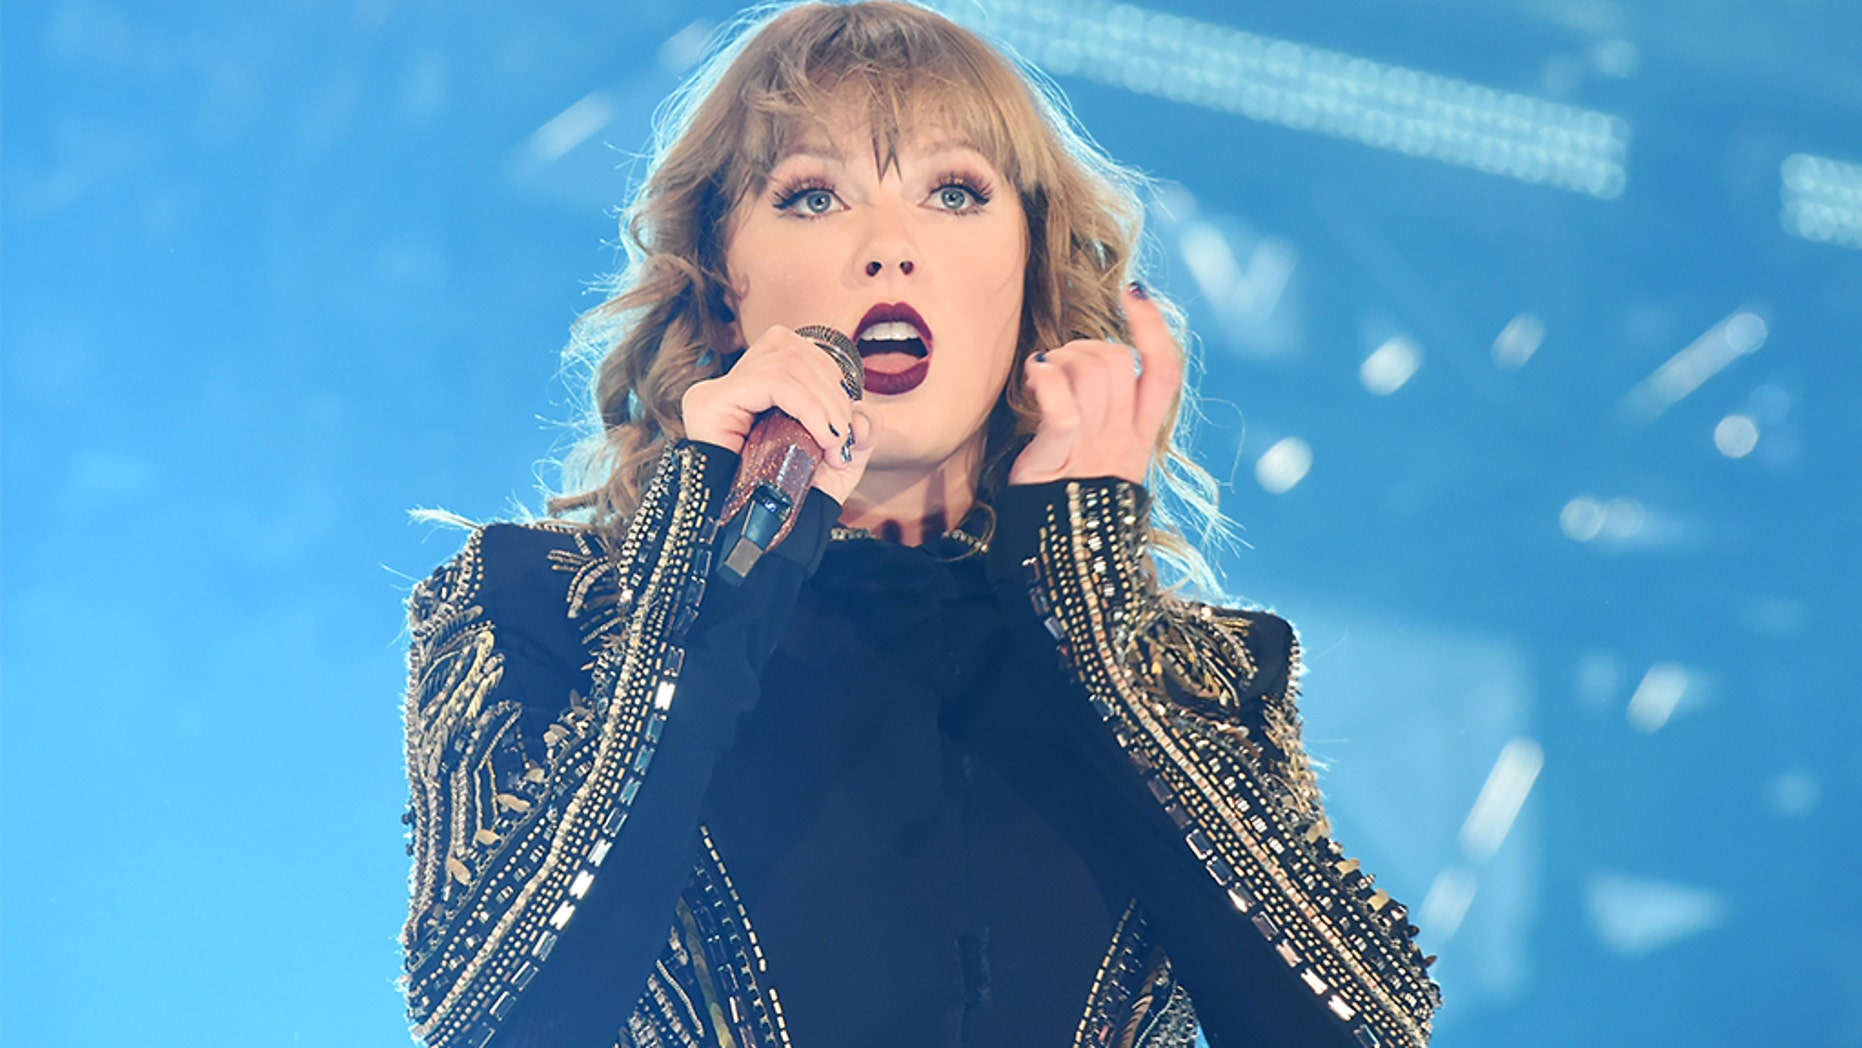 Facial recognition technology used to look for a Taylor Swift stalker